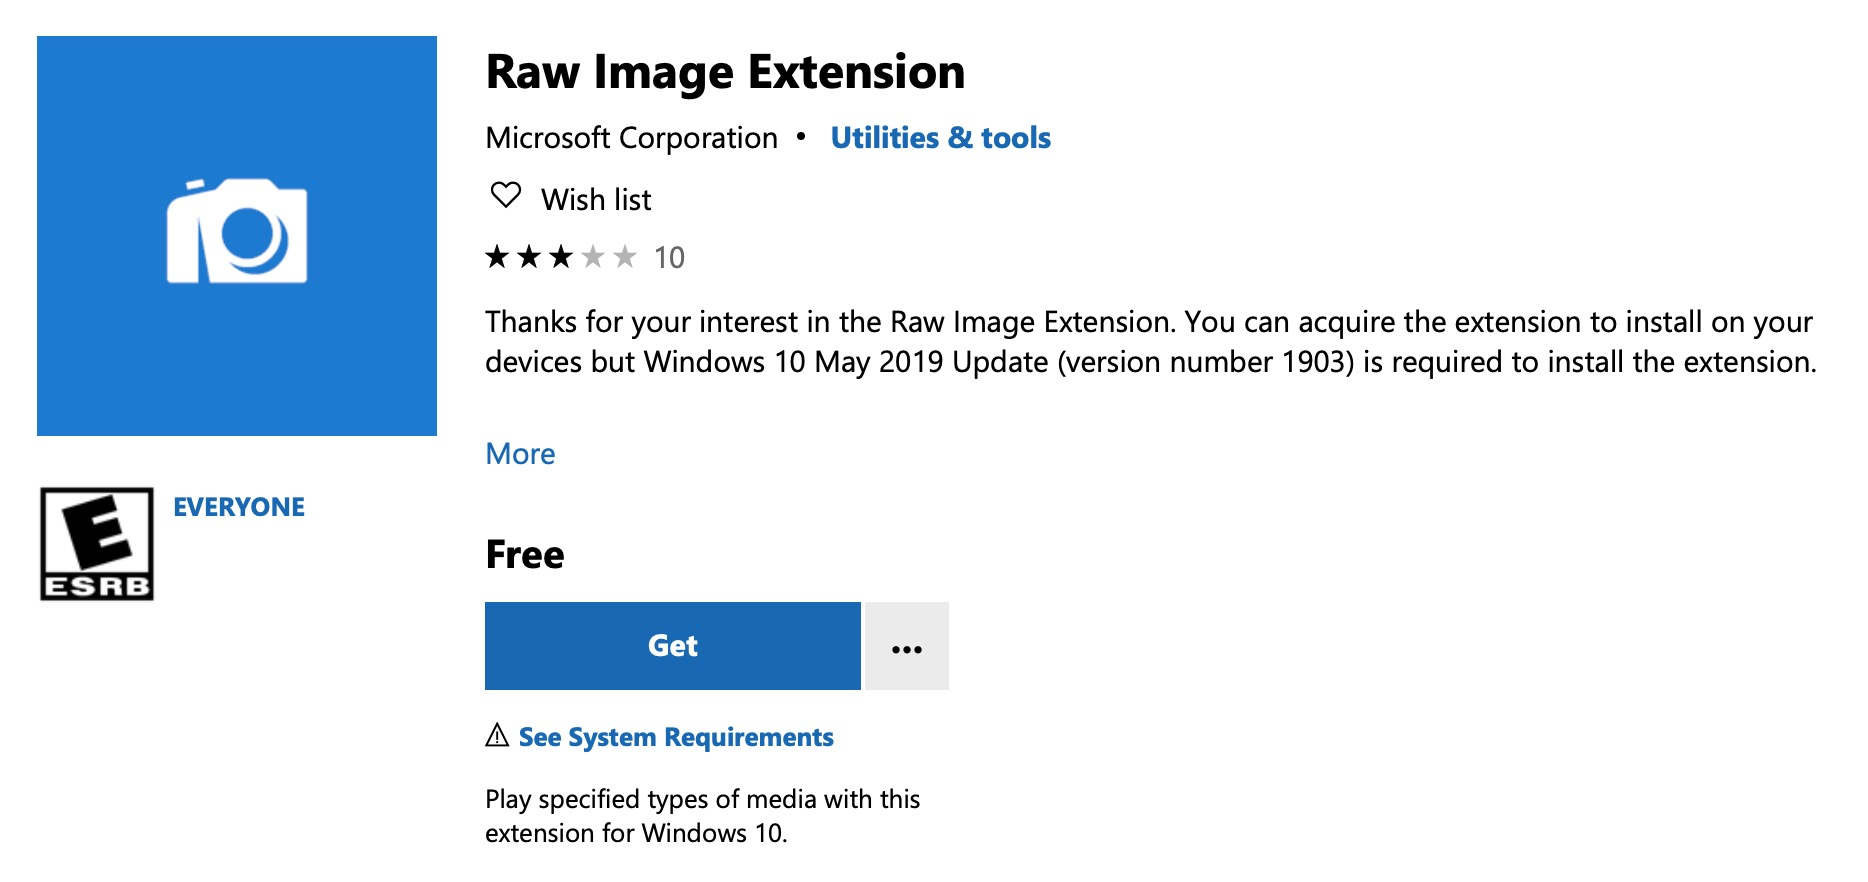 Microsoft releases Raw Image Extension to get raw image